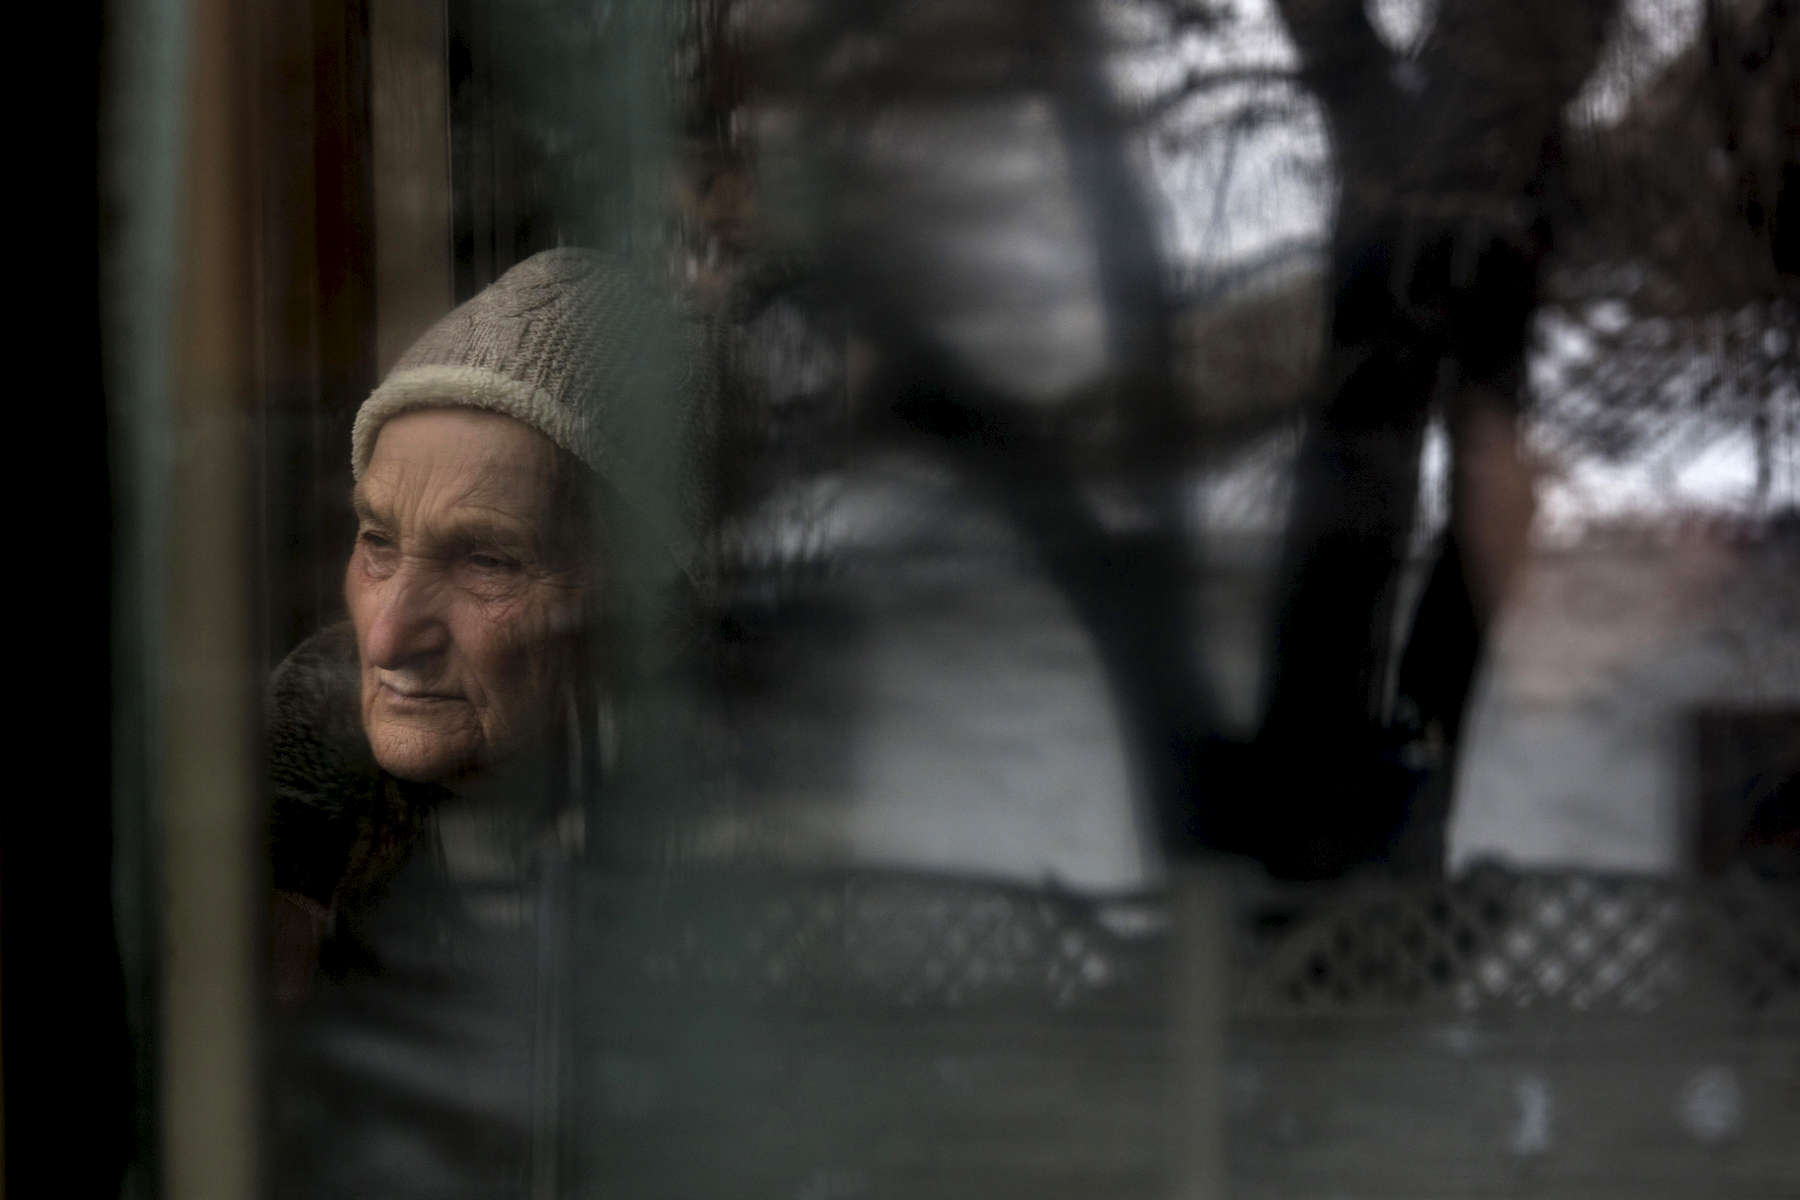 An elderly woman is seen reflected in the window of a streetcar in Donetsk.After more than four years of war the armed conflict in eastern Ukraine has a human toll that is staggering. The war has displaced more than 1.6 million with over 2,500 civilians killed and 9,000 injured. Some 200,000 people live under constant fear of shelling every day, with nearly a third of the 3.4 million people in need of humanitarian assistance over 60 years of age. Ukraine has the highest proportion of elderly affected by war in the world.